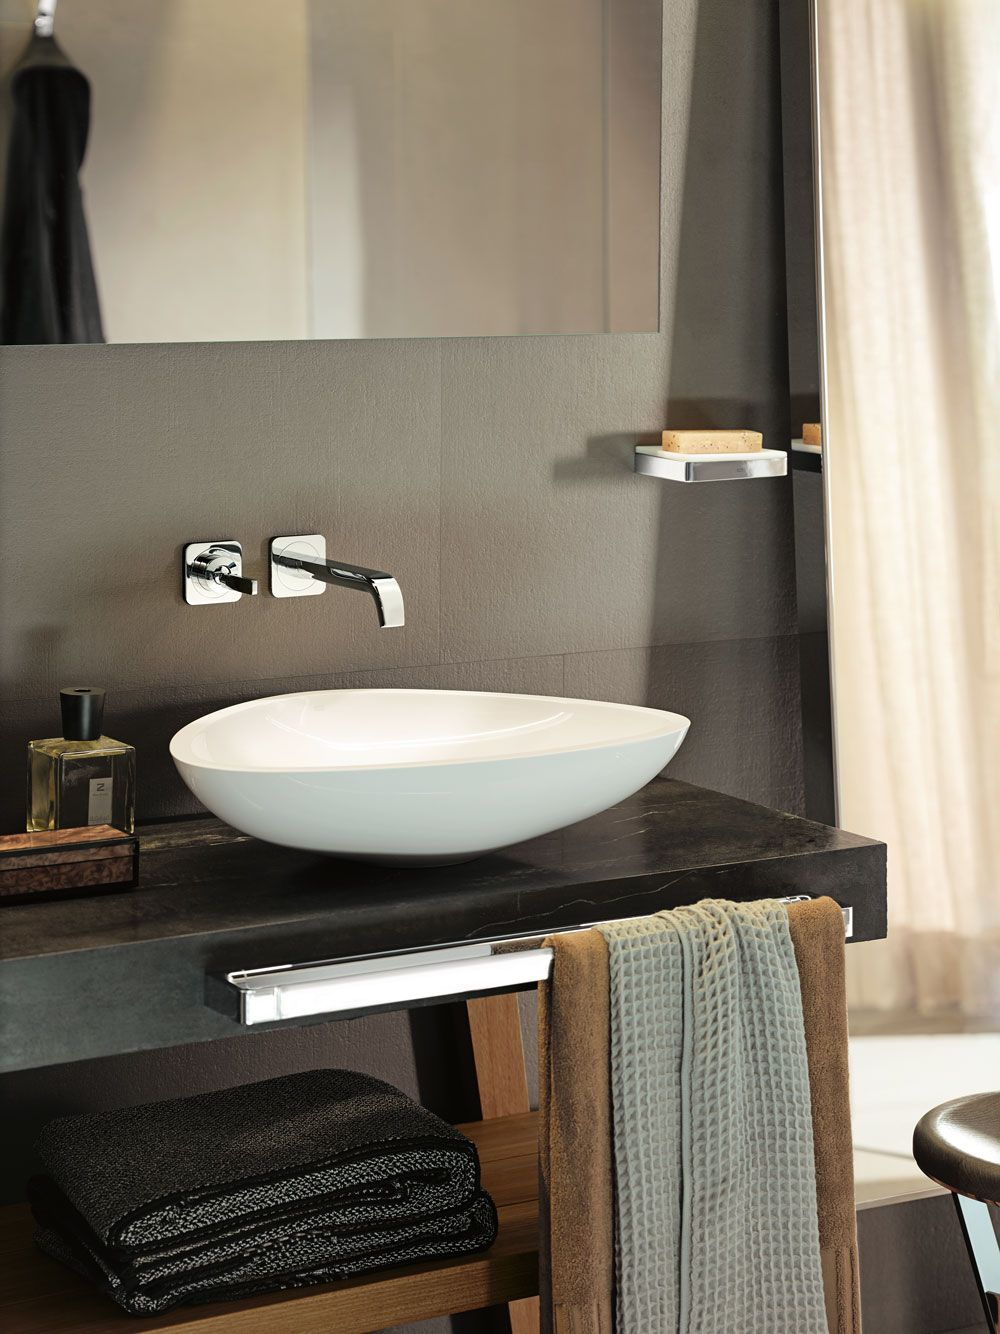 Axor Citterio E Wall-Mounted Single-Handle Faucet Trim | baterie ...